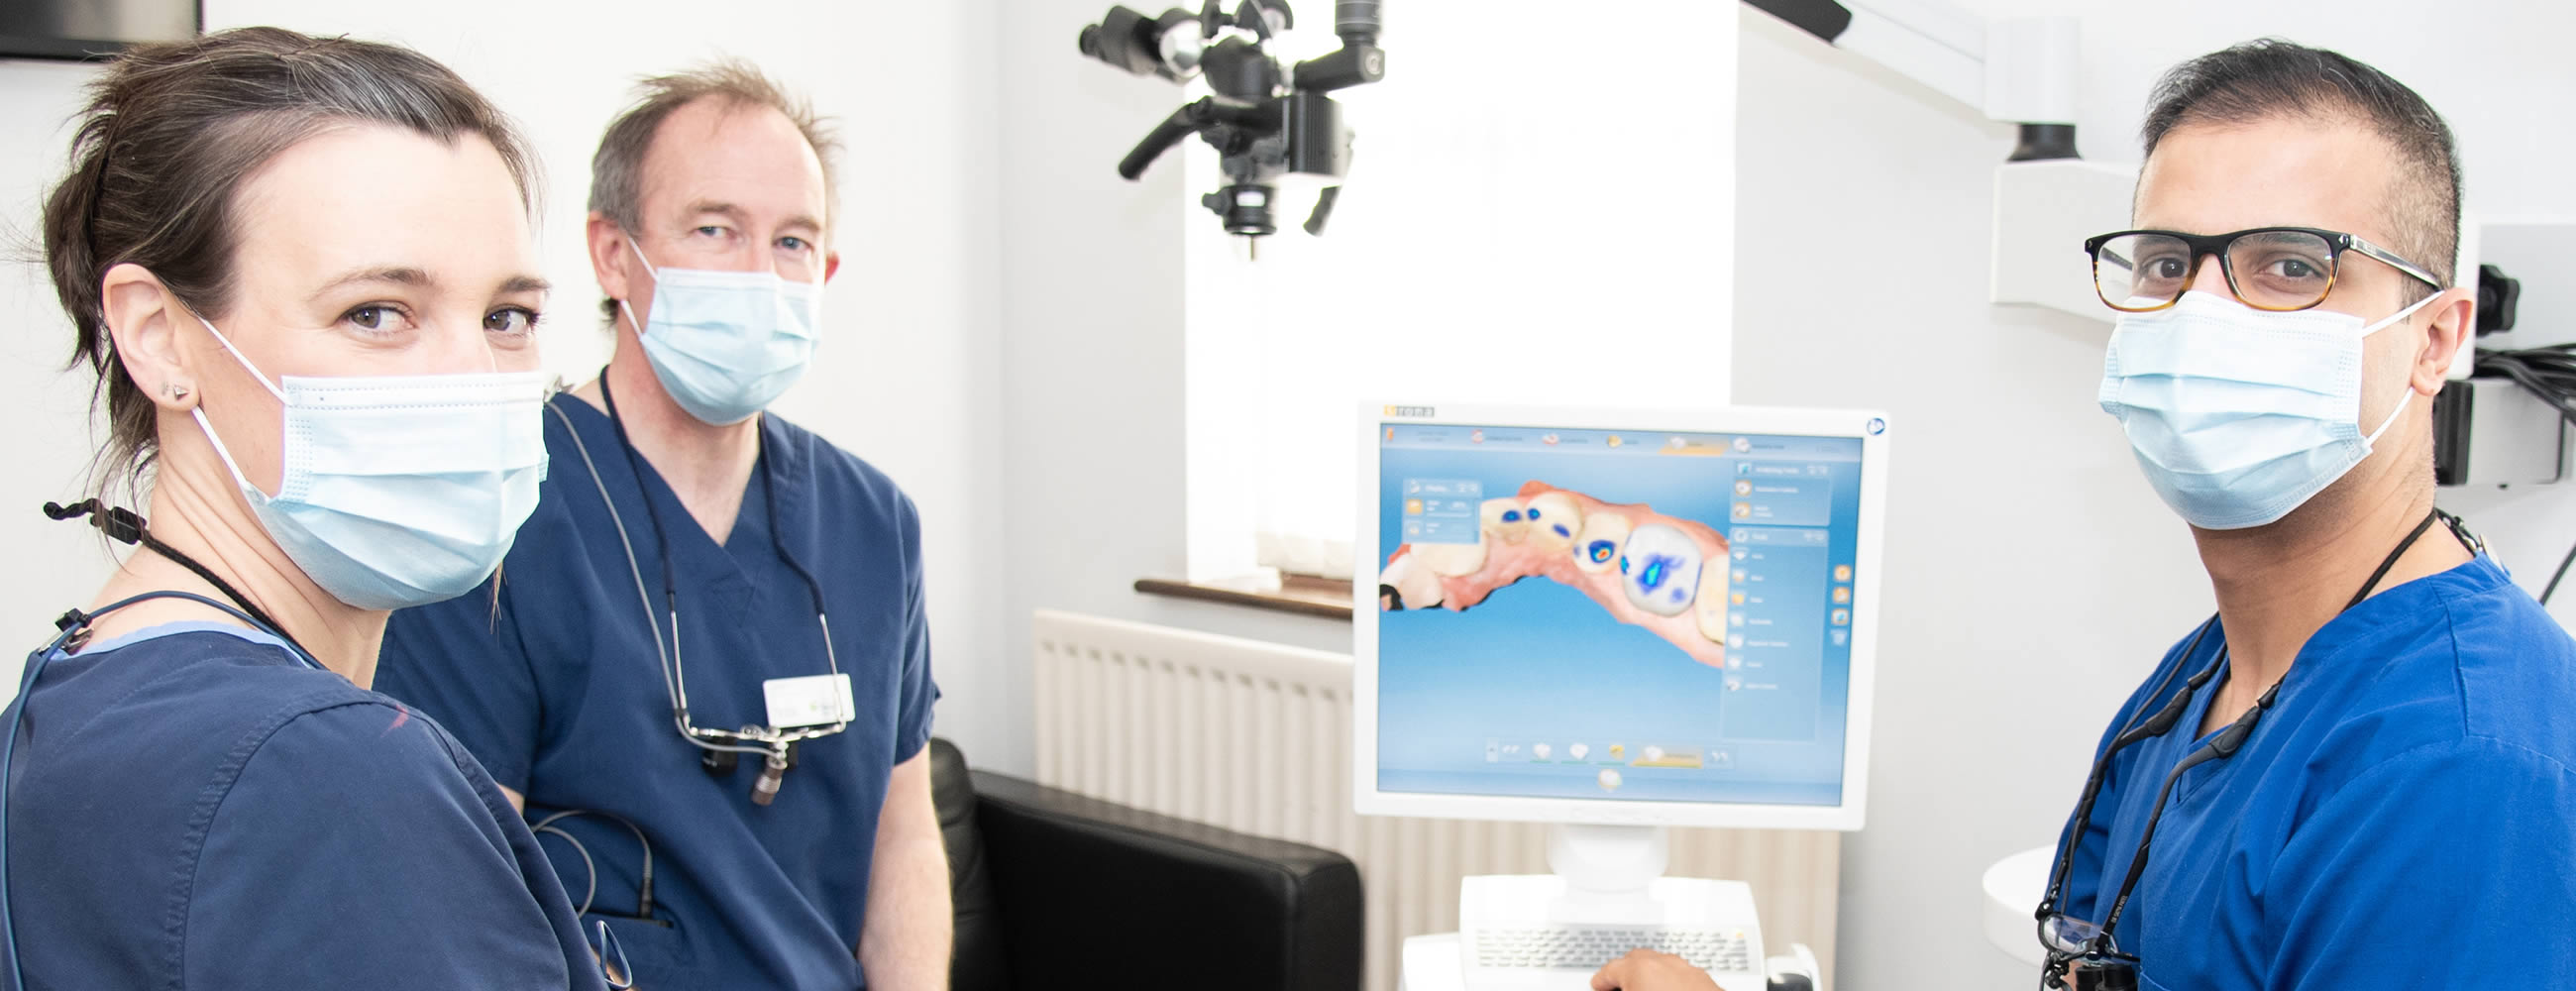 Stricklandgate Dental Team in Penrith, Cumbria